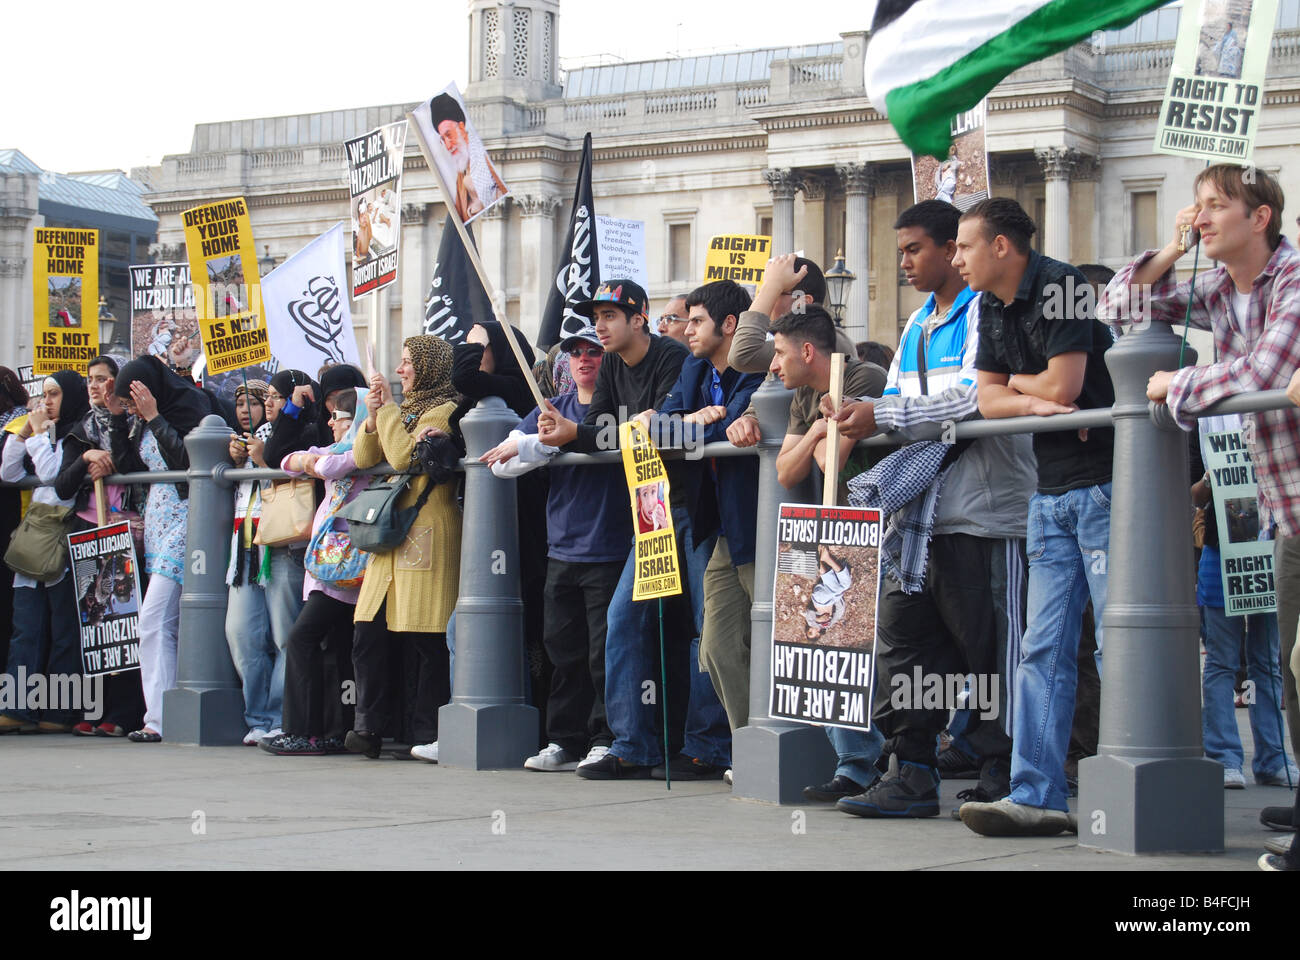 Al quds demonstration Trafalgar square London - Stock Image